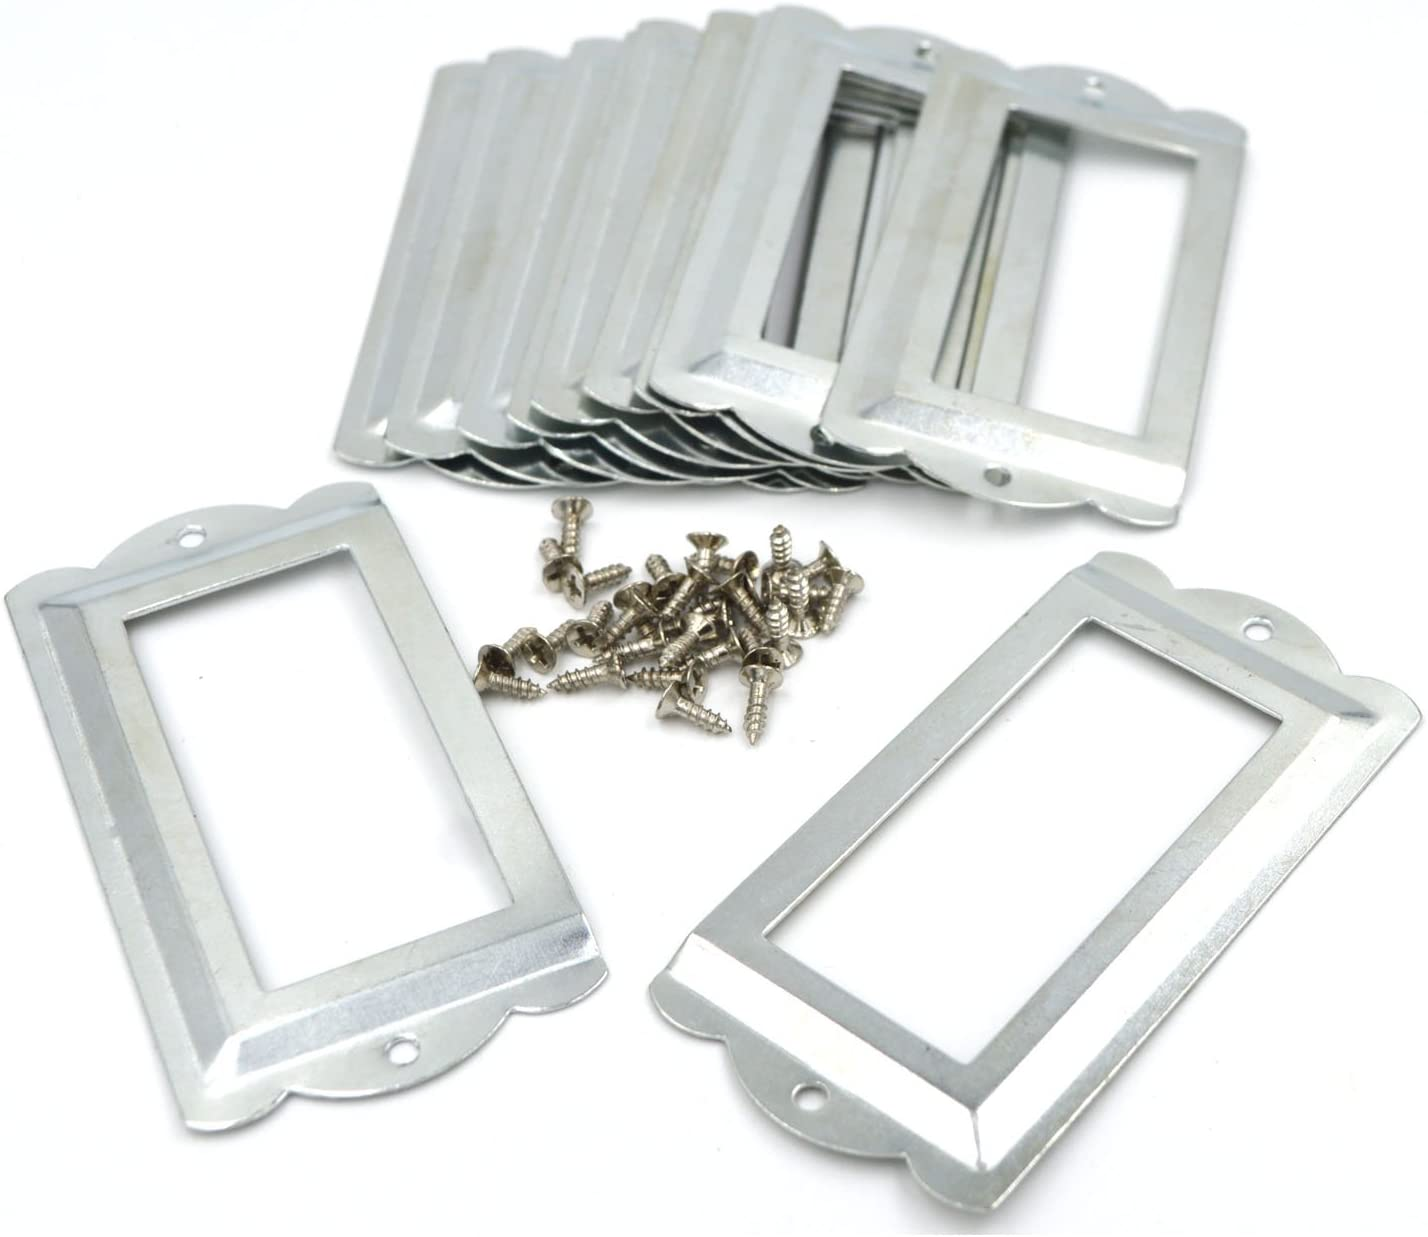 SpzcdZa 12Pack 84 x 42mm Office Library File Drawer Cabinet Card Tag Label Card Holder Drawer Pull/Label Holders/Label Frames Card/Label Holder Modern Label Holders Metal Frame(Silver Tone)